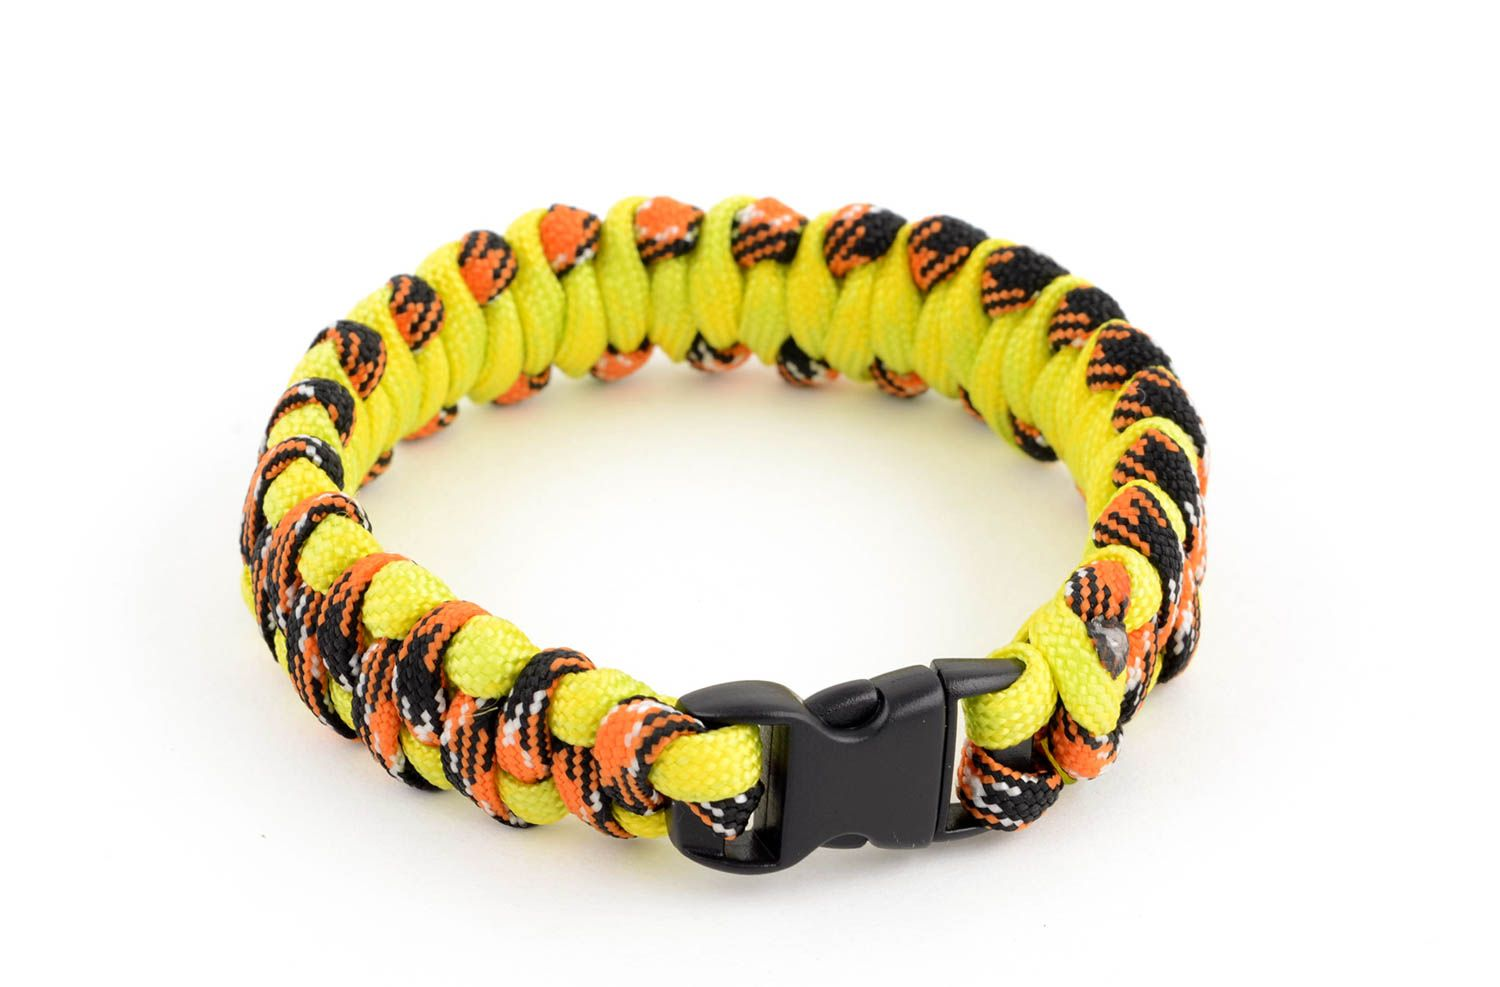 Handmade paracord bracelet parachute cord bracelet hiking equipment cool gifts photo 2